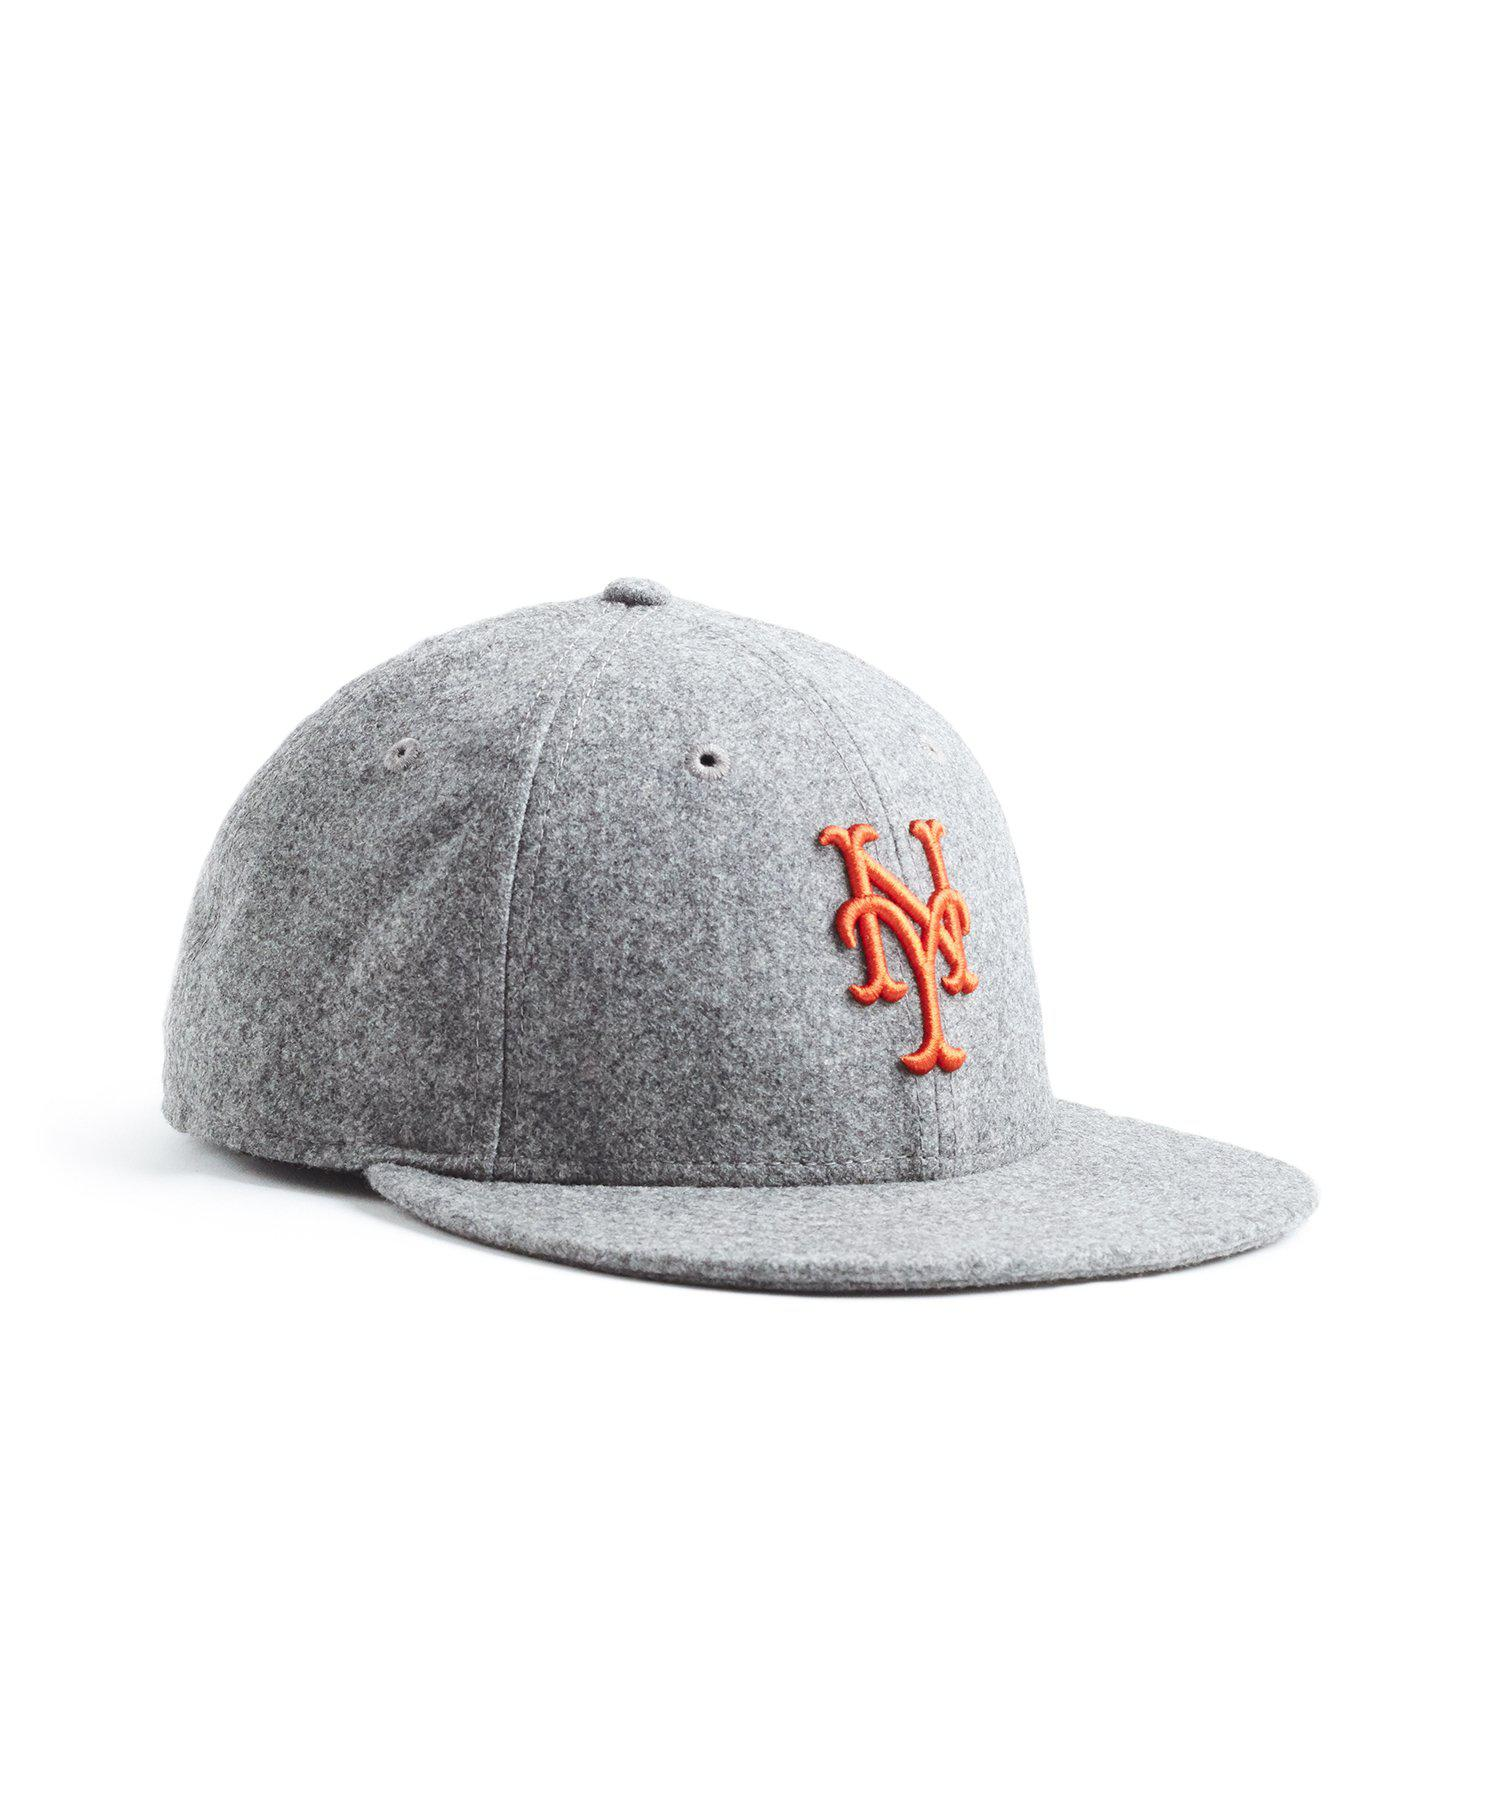 03d60bcb378 NEW ERA HATS. Men s Gray Exclusive Ny Mets Hat In Italian Barberis Wool  Flannel. £62 From Todd Snyder ...